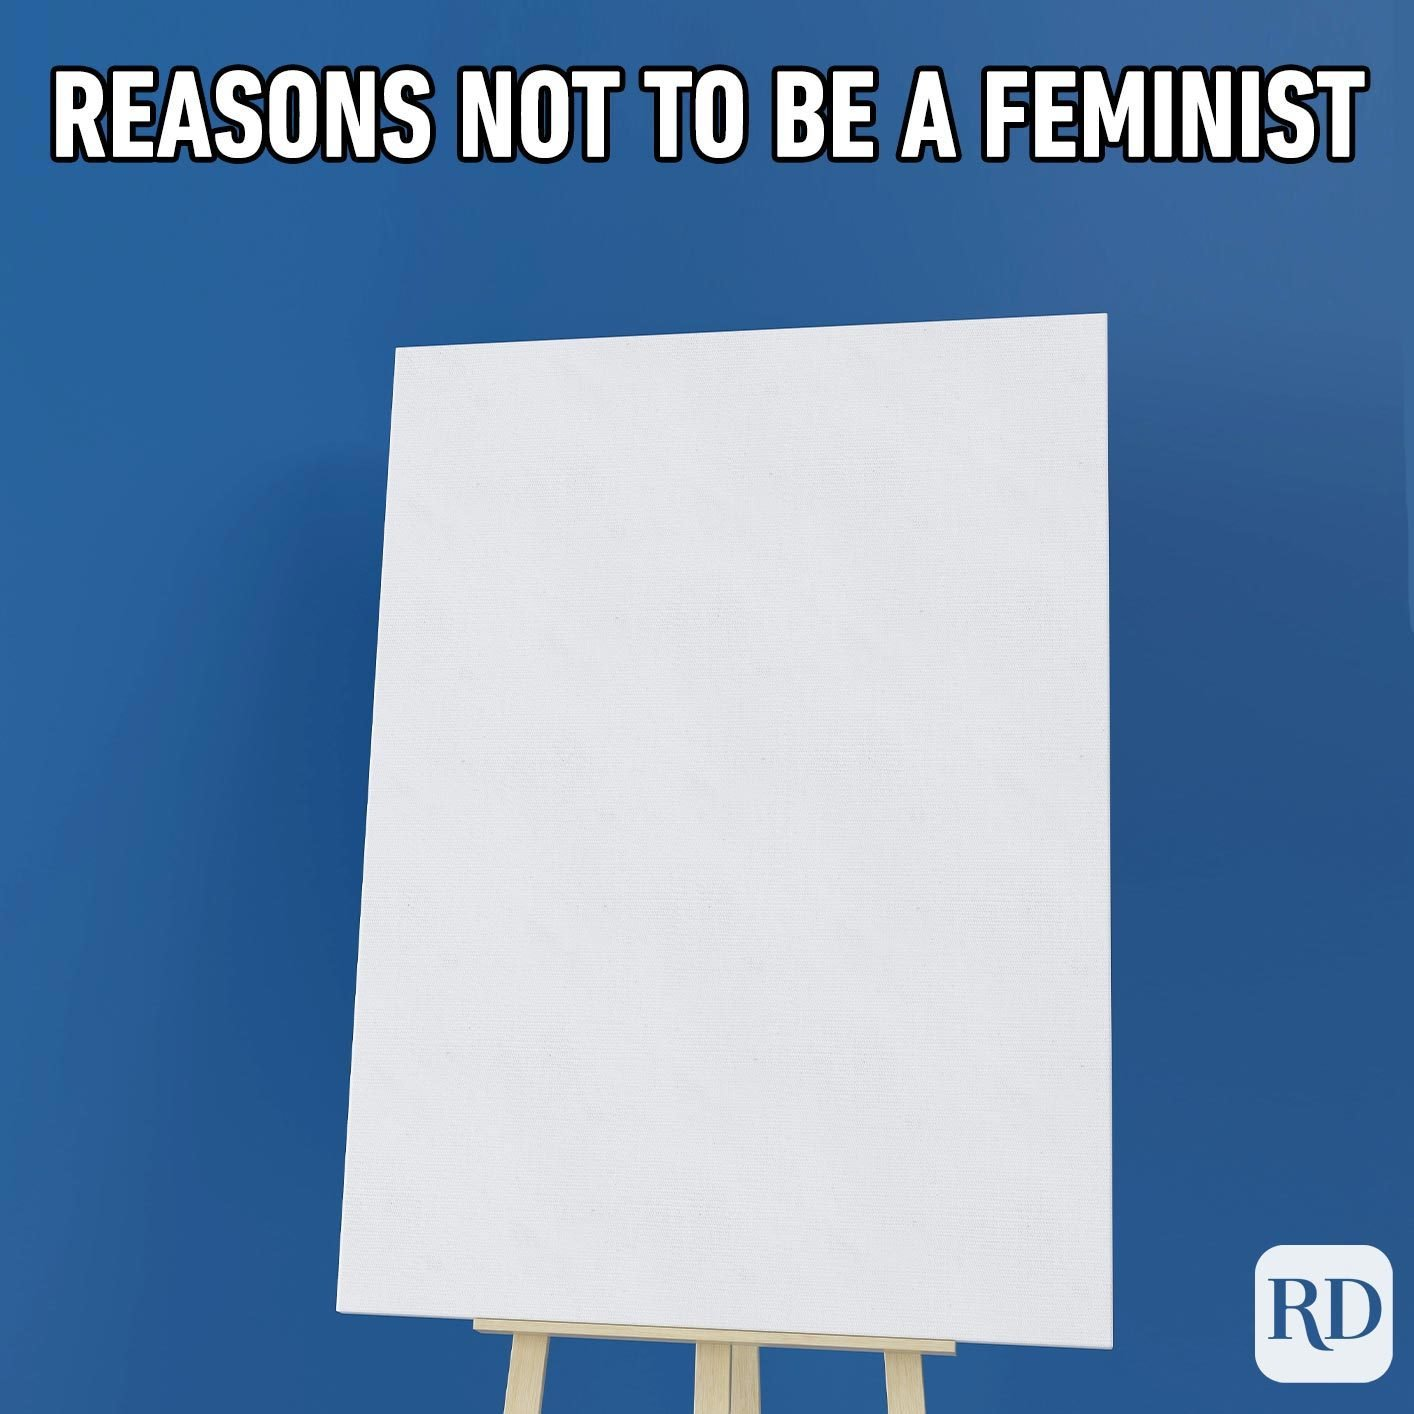 Blank notepad. Meme text: Reasons not to be a feminist